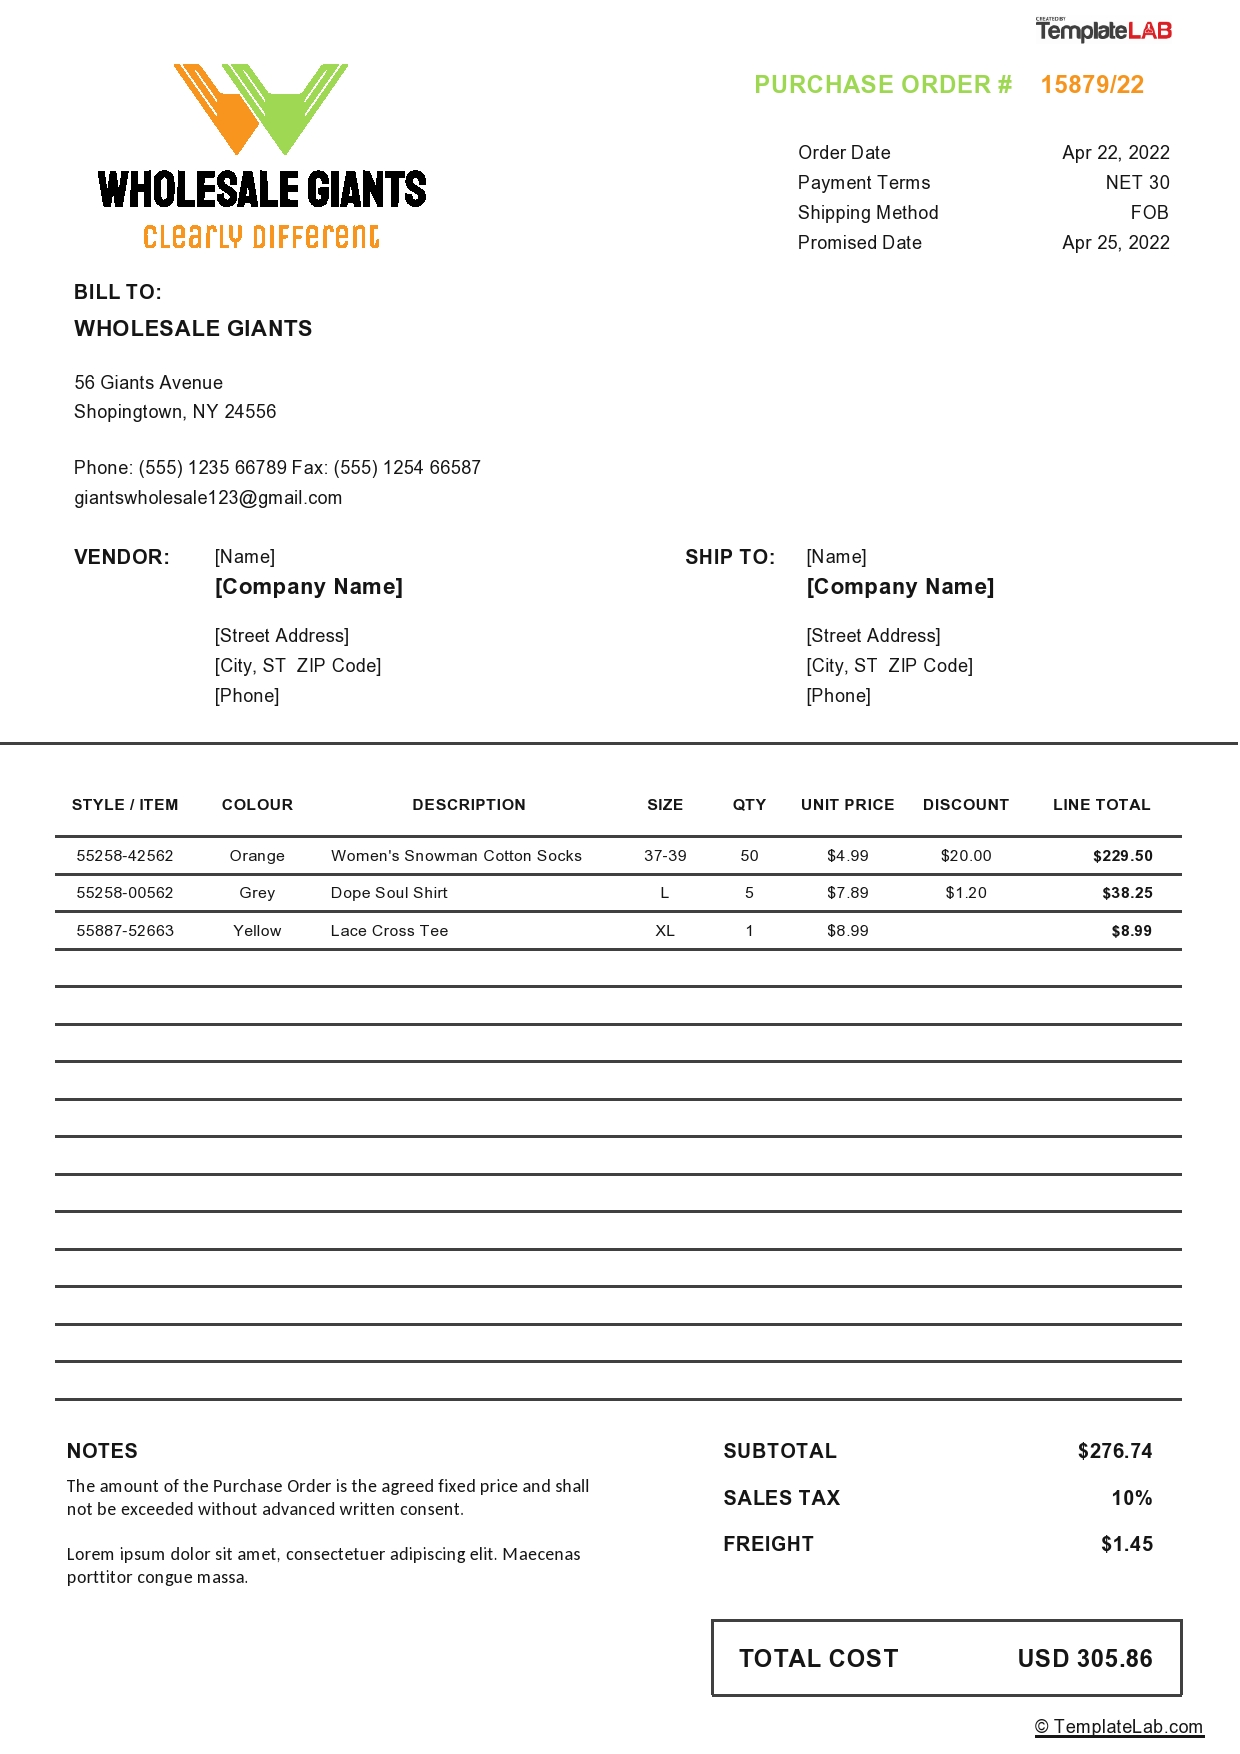 Free Wholesale Purchase Order Template